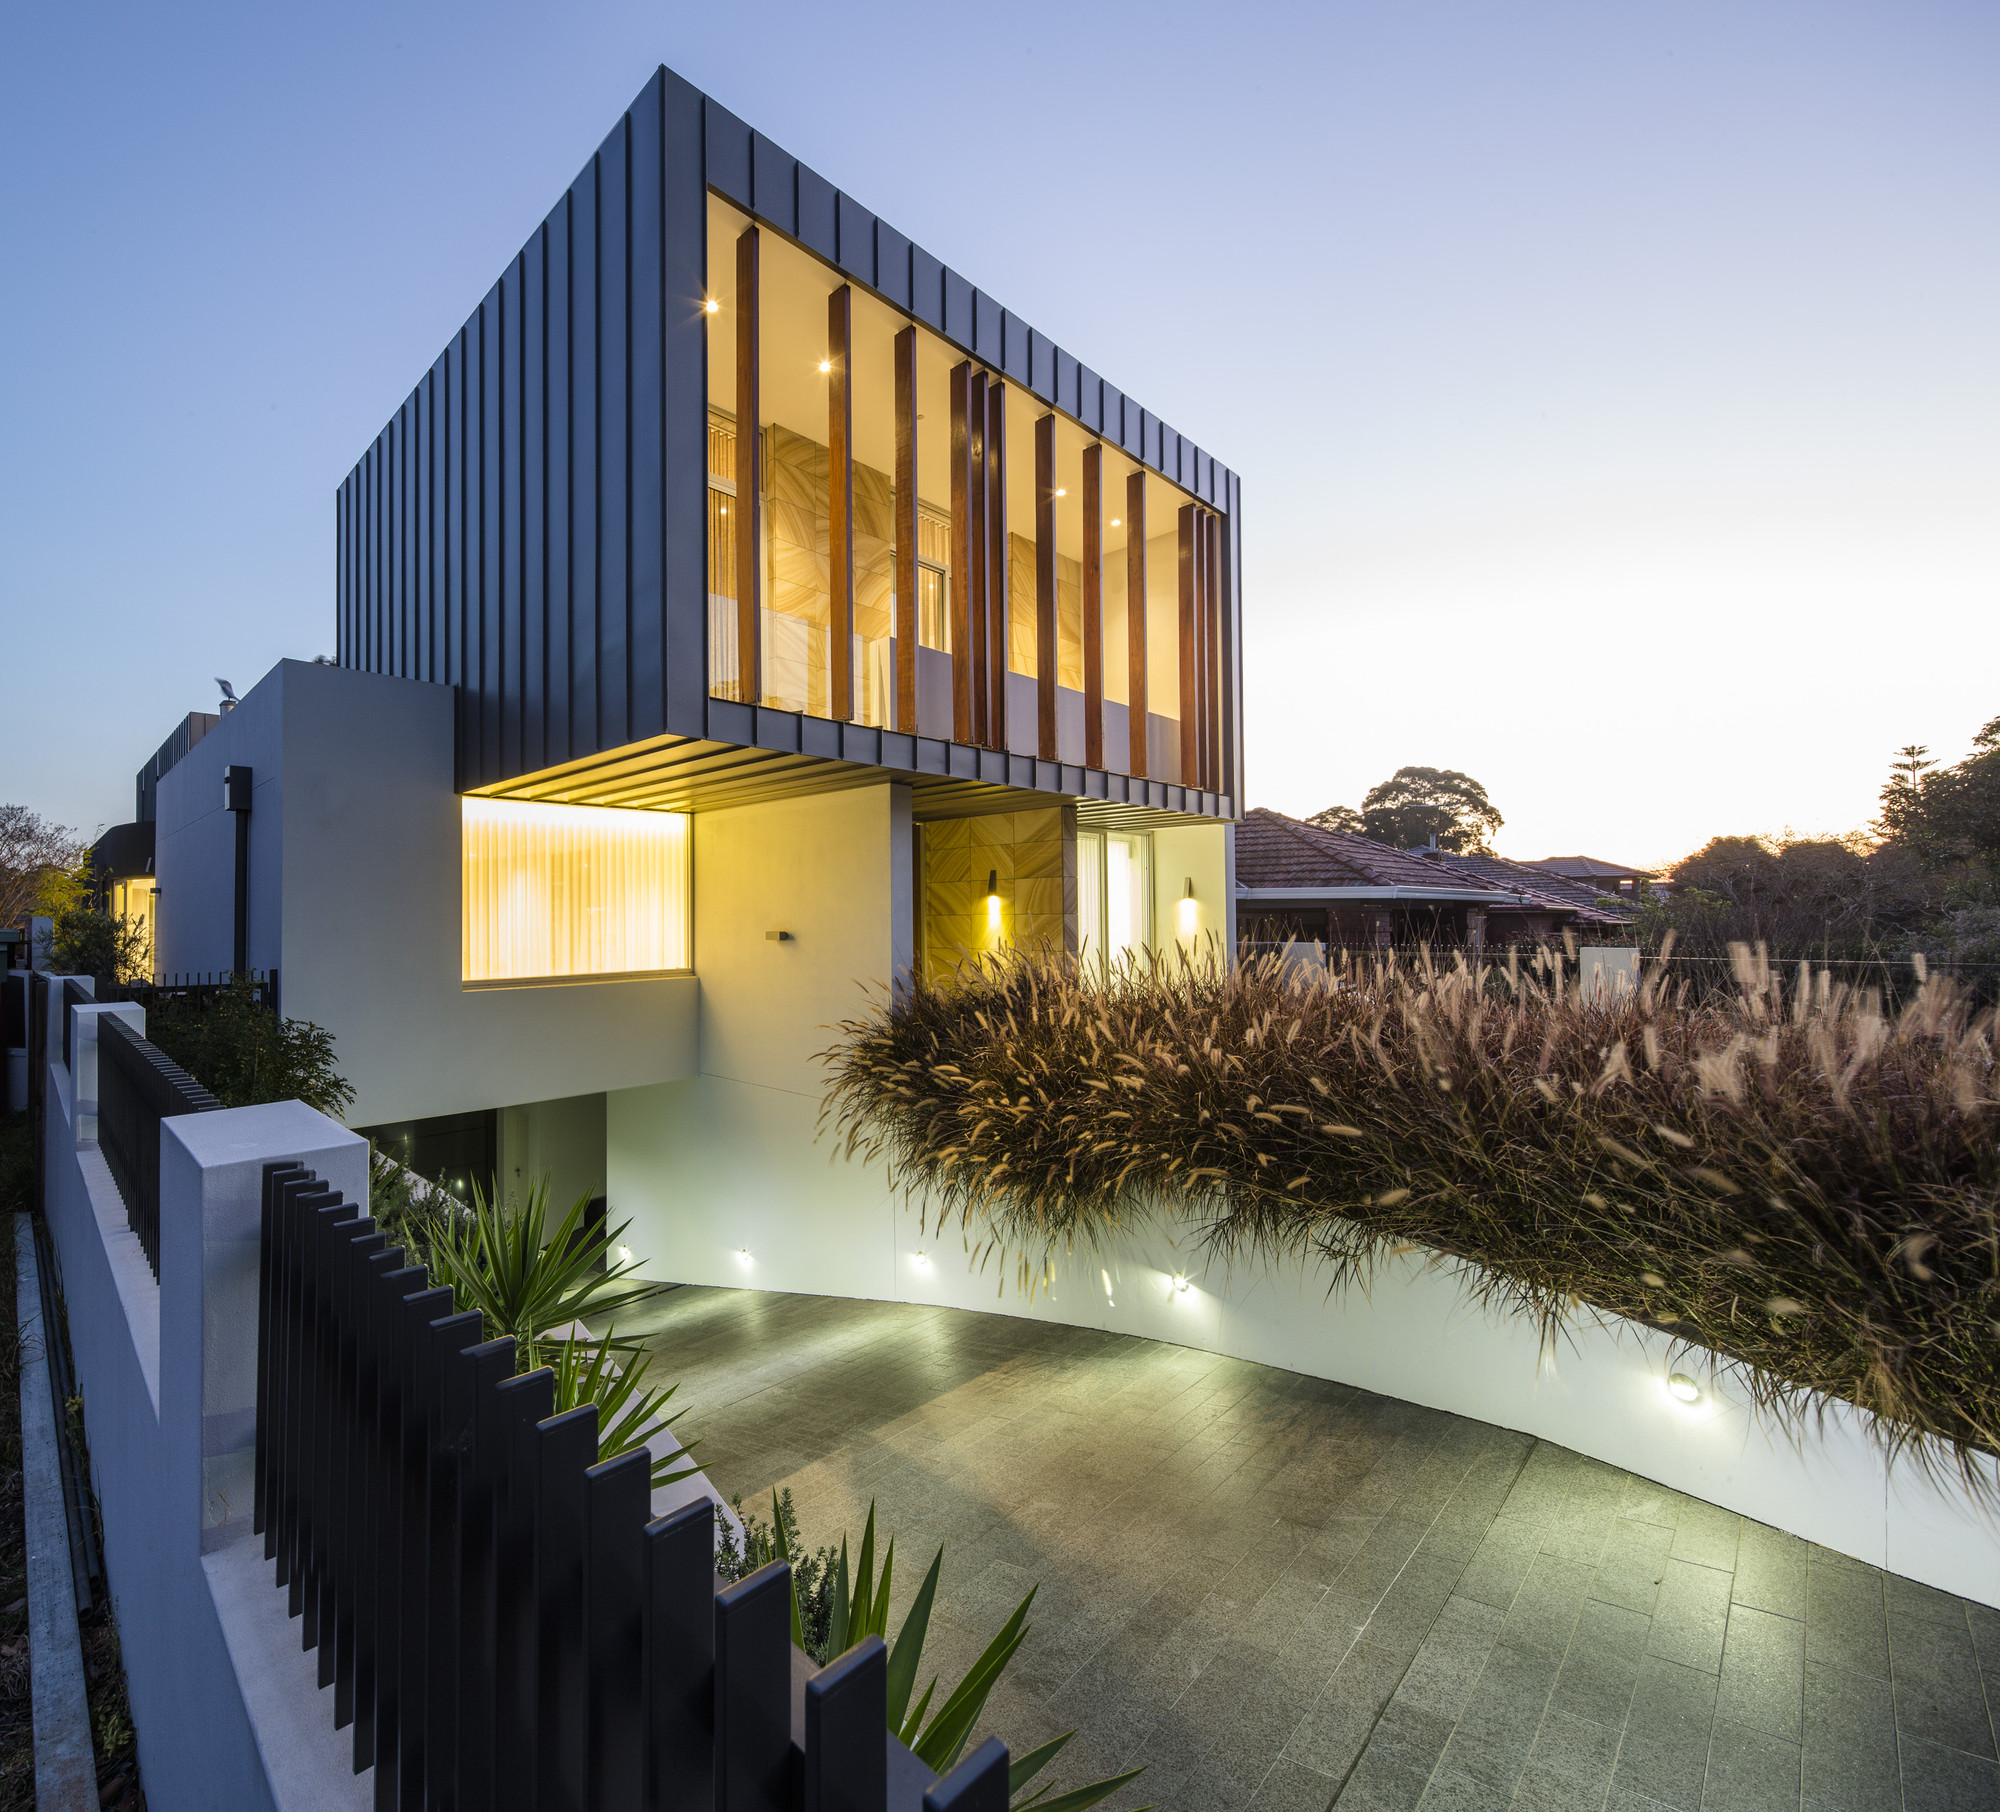 Box house zouk architects archdaily for House in a box